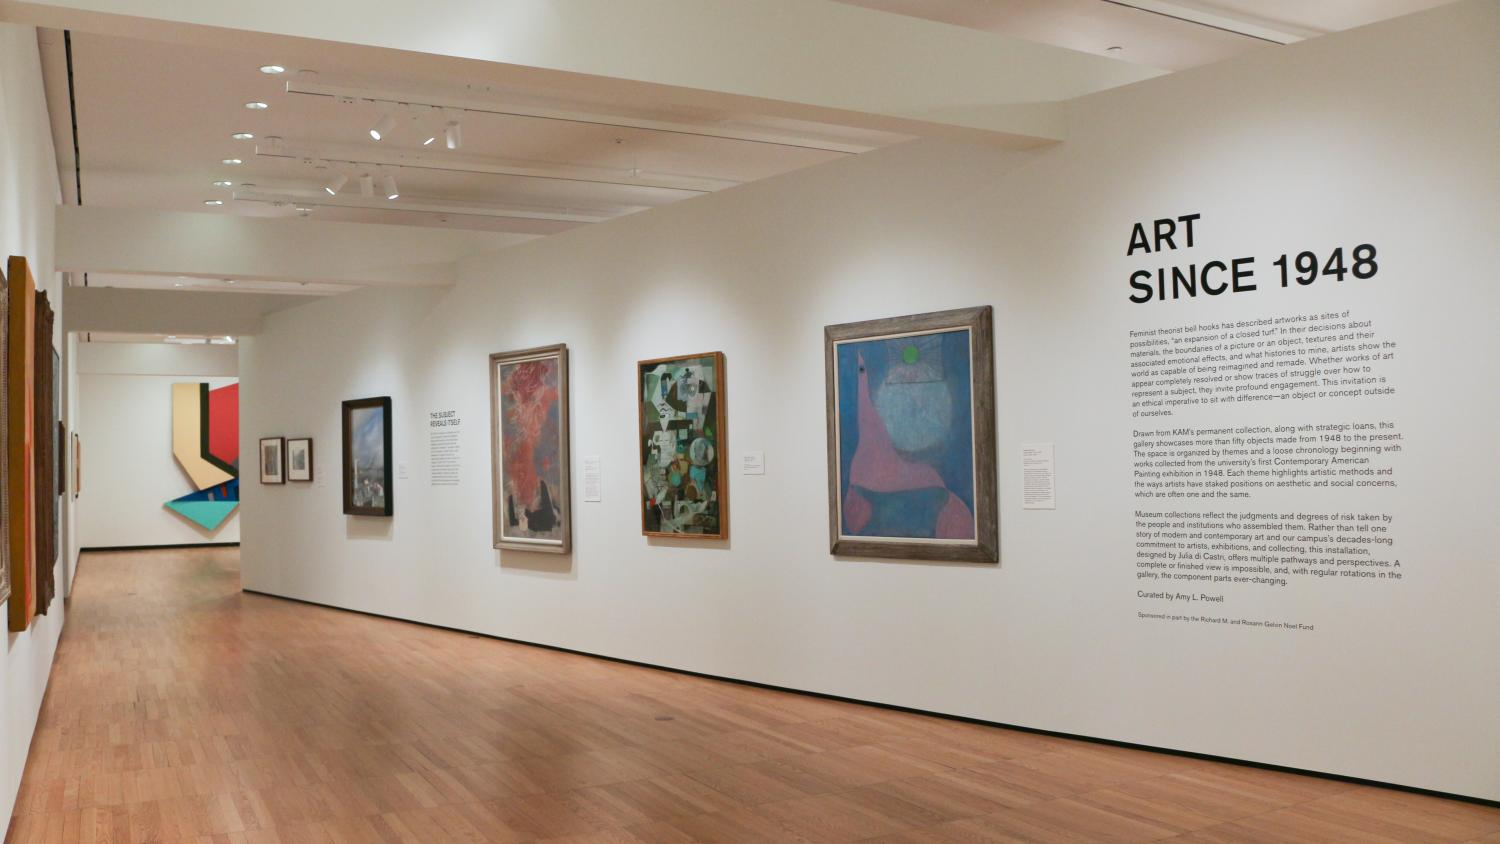 gallery view of entry wall of Art Since 1948 with the exhibition title text and art from the museum's modern and contemporary collection.